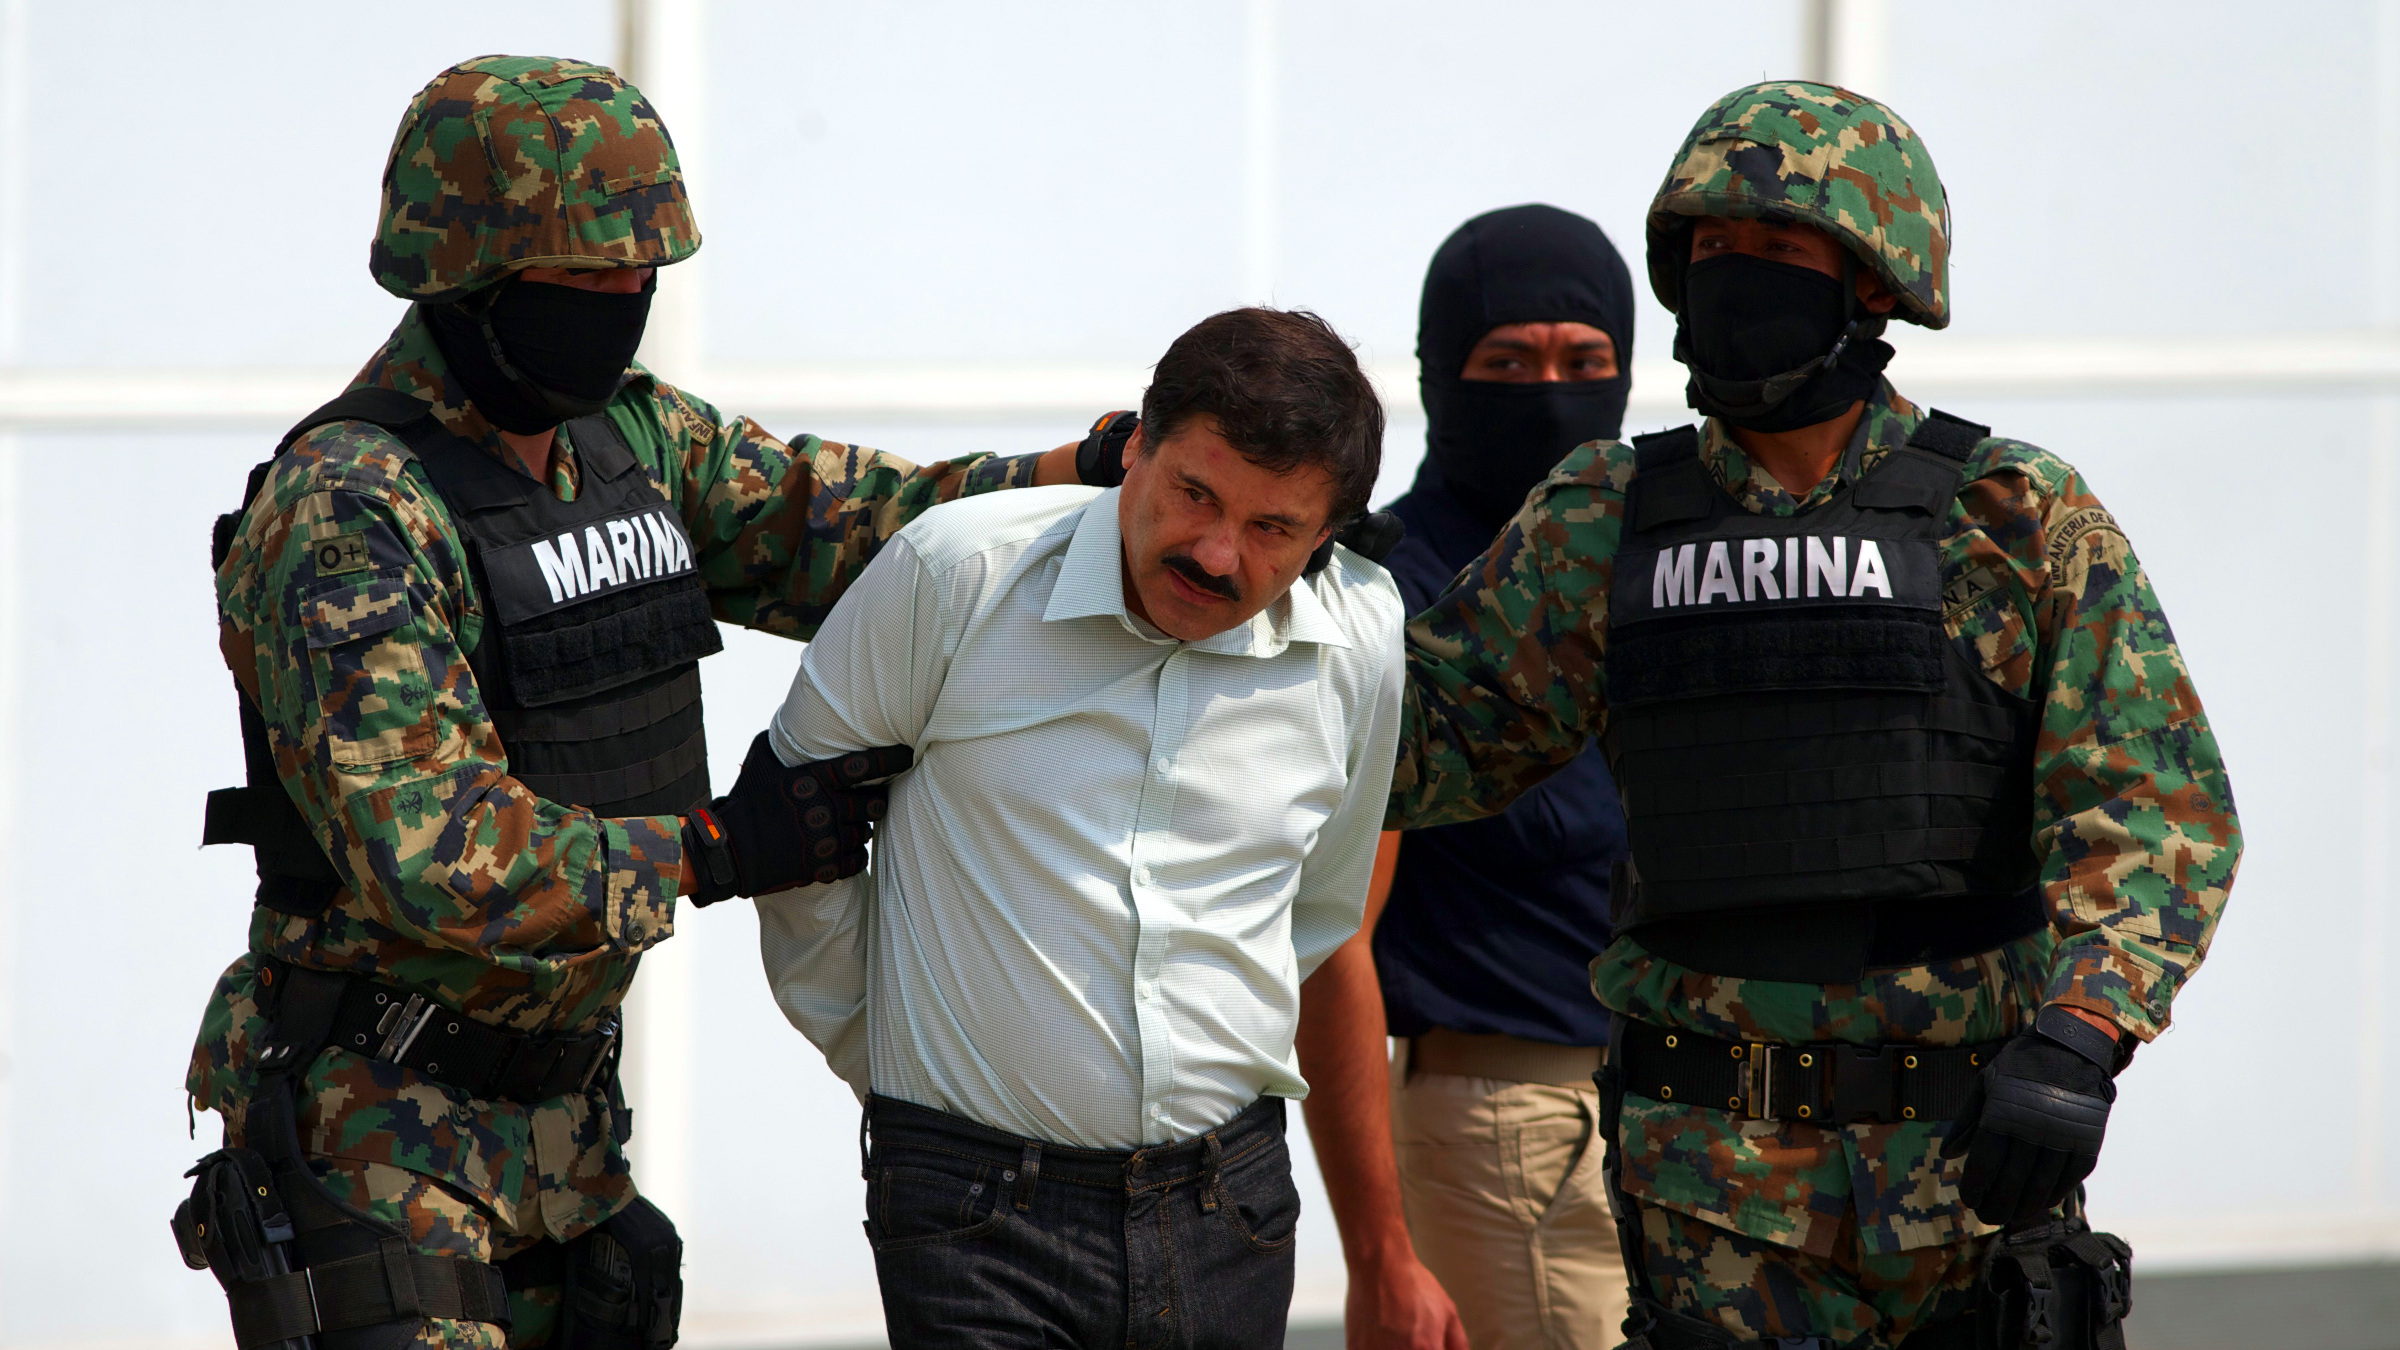 "Joaquin ""El Chapo"" Guzman is escorted to a helicopter in handcuffs by Mexican navy marines at a navy hanger in Mexico City, Mexico, Saturday, Feb. 22, 2014. A senior U.S. law enforcement official said Saturday, that Guzman, the head of Mexico's Sinaloa Cartel, was captured alive overnight in the beach resort town of Mazatlan. Guzman faces multiple federal drug trafficking indictments in the U.S. and is on the Drug Enforcement Administration's most-wanted list."